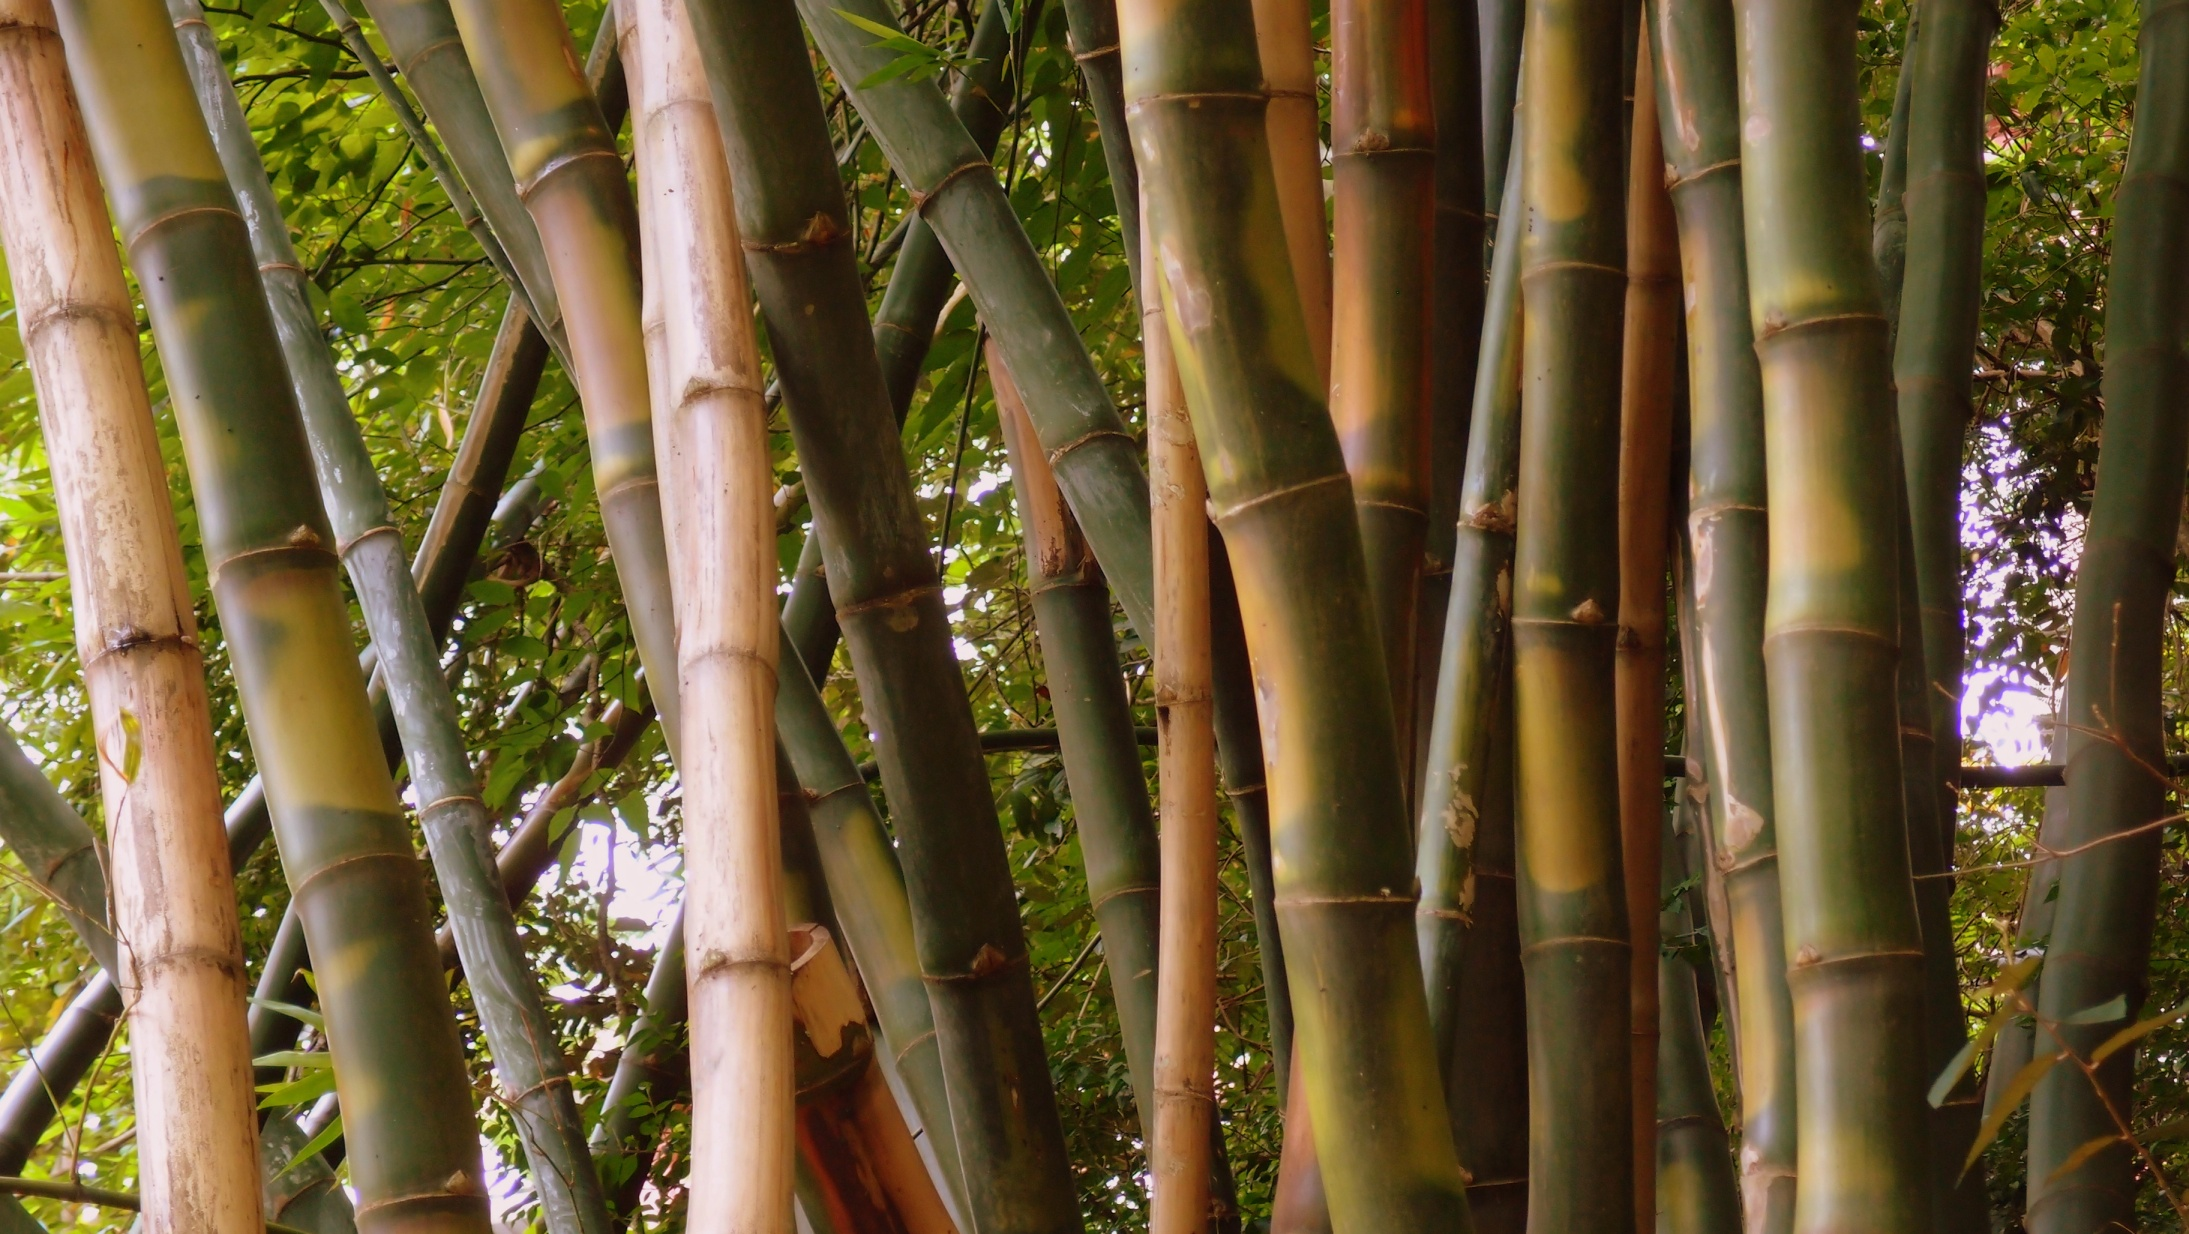 Some very big bamboo